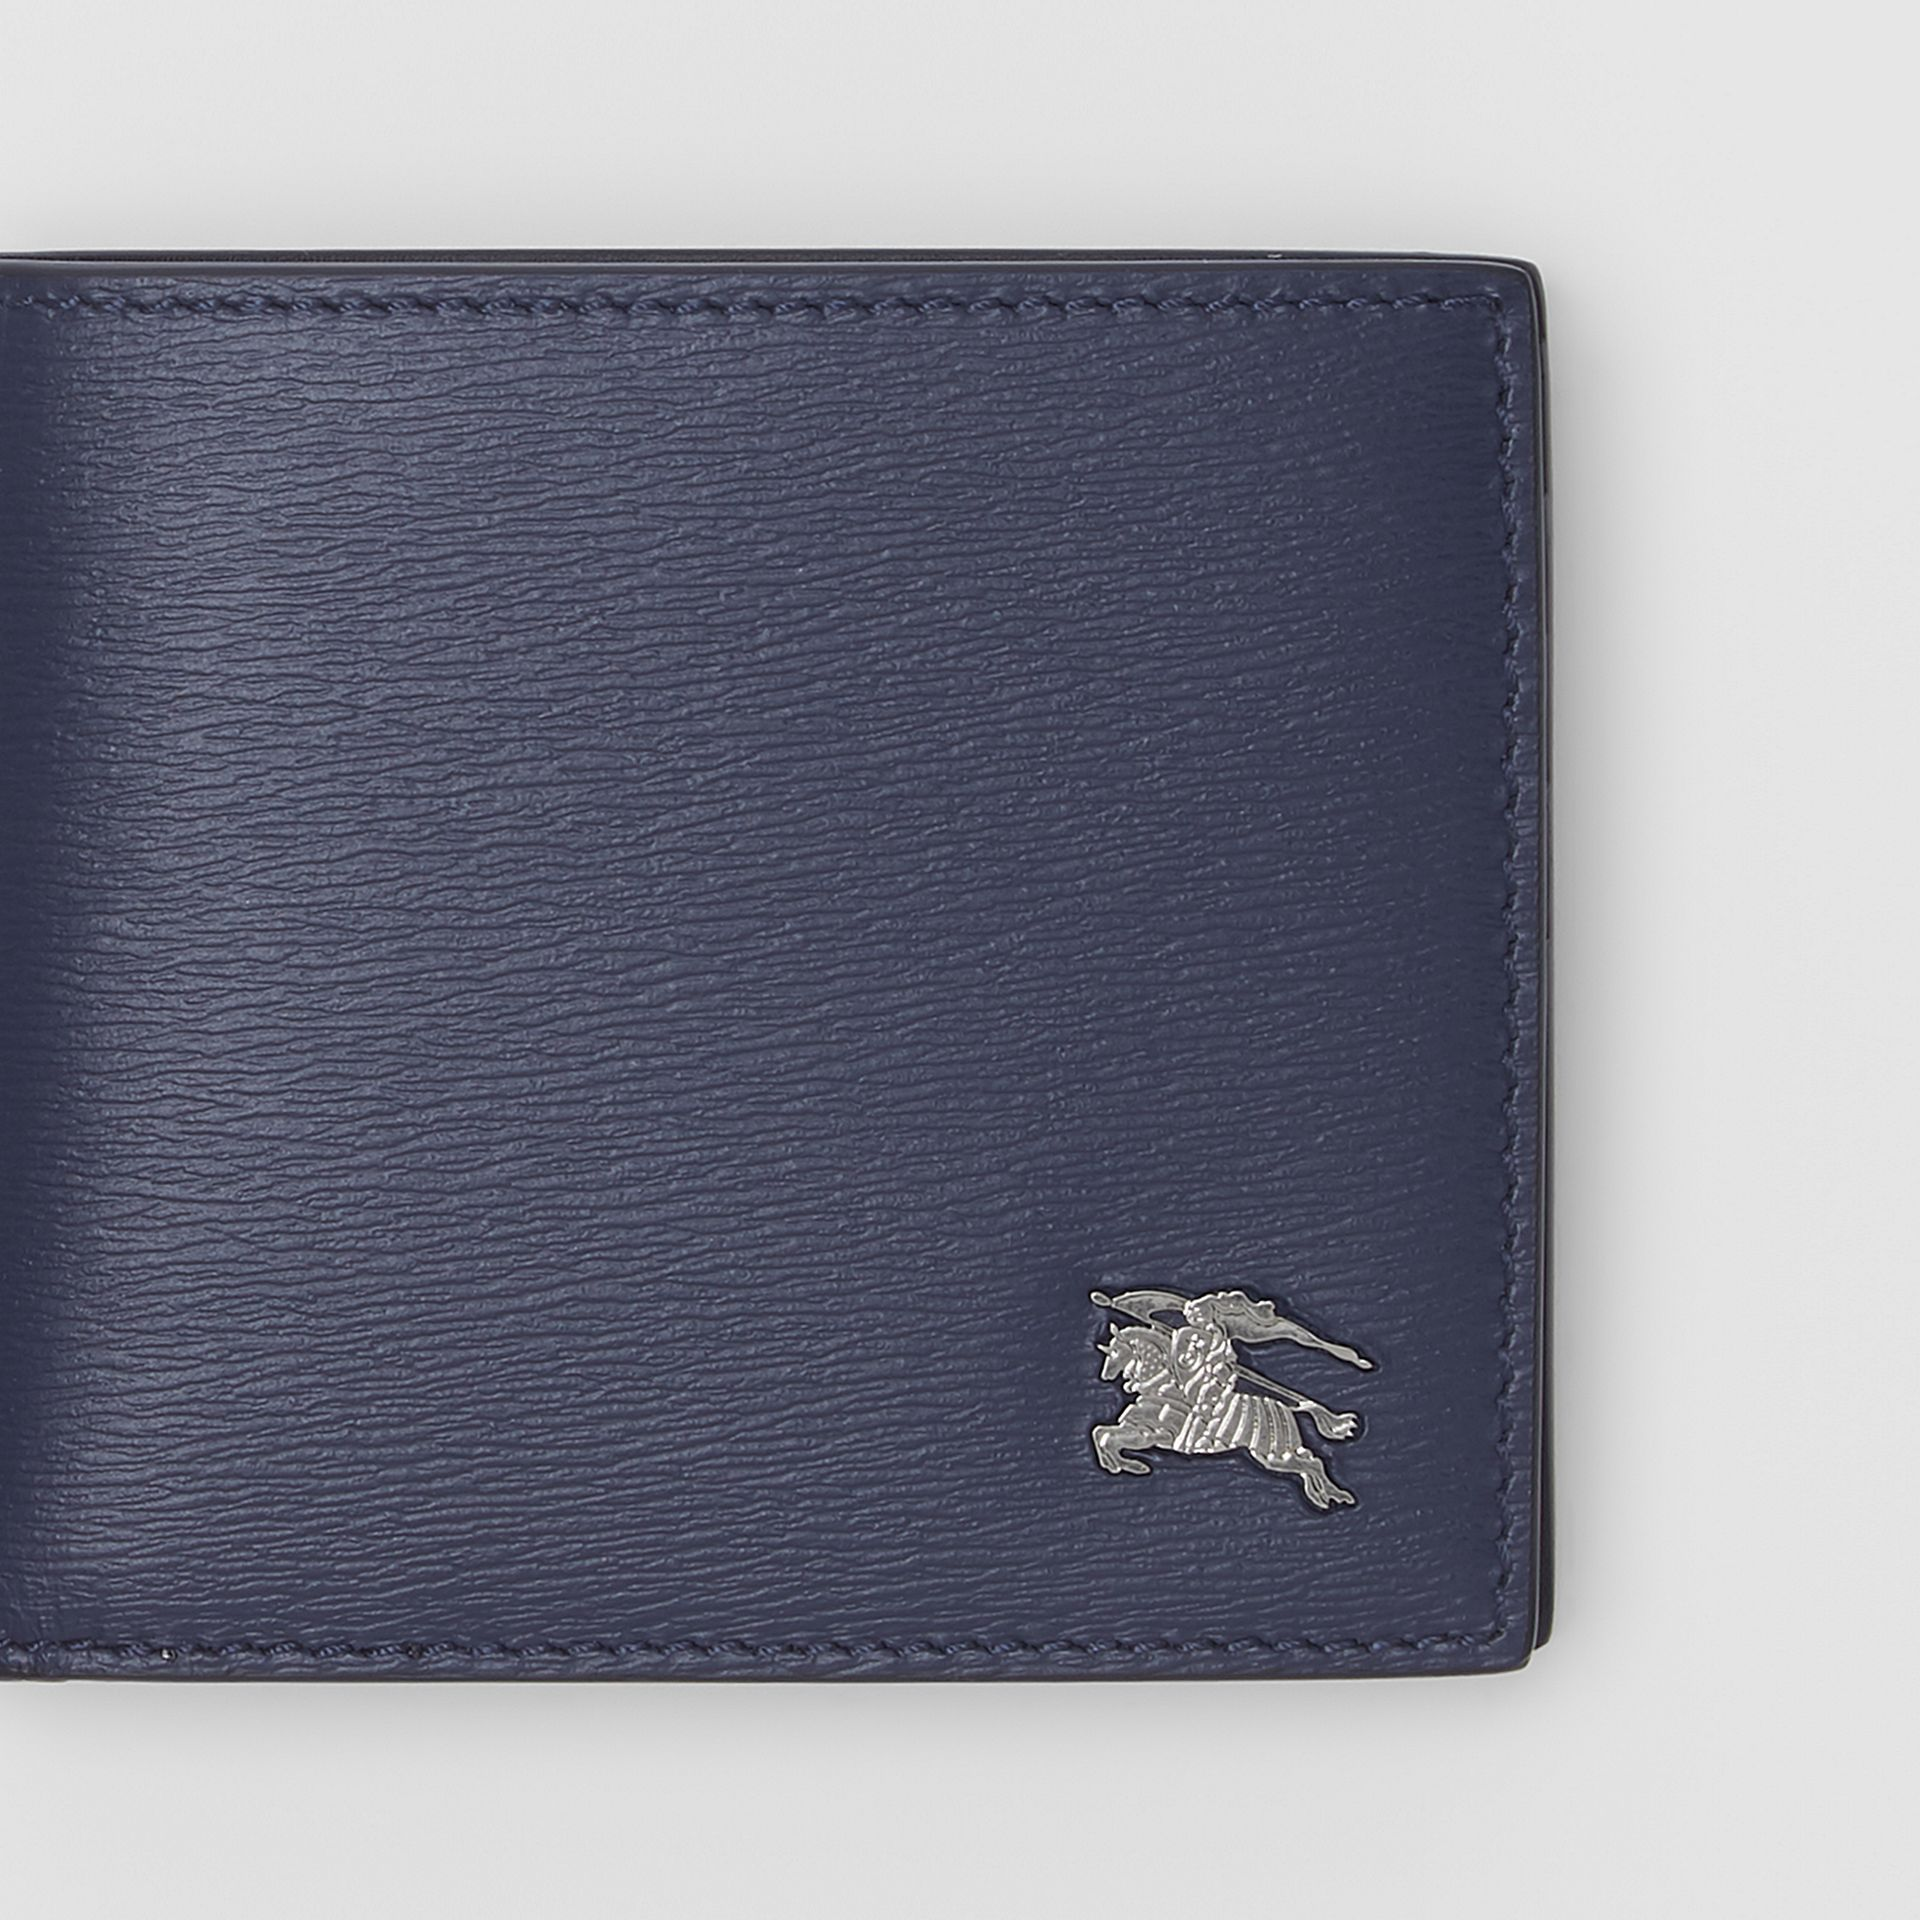 London Leather Bifold Wallet with ID Card Case in Navy - Men | Burberry United Kingdom - gallery image 1